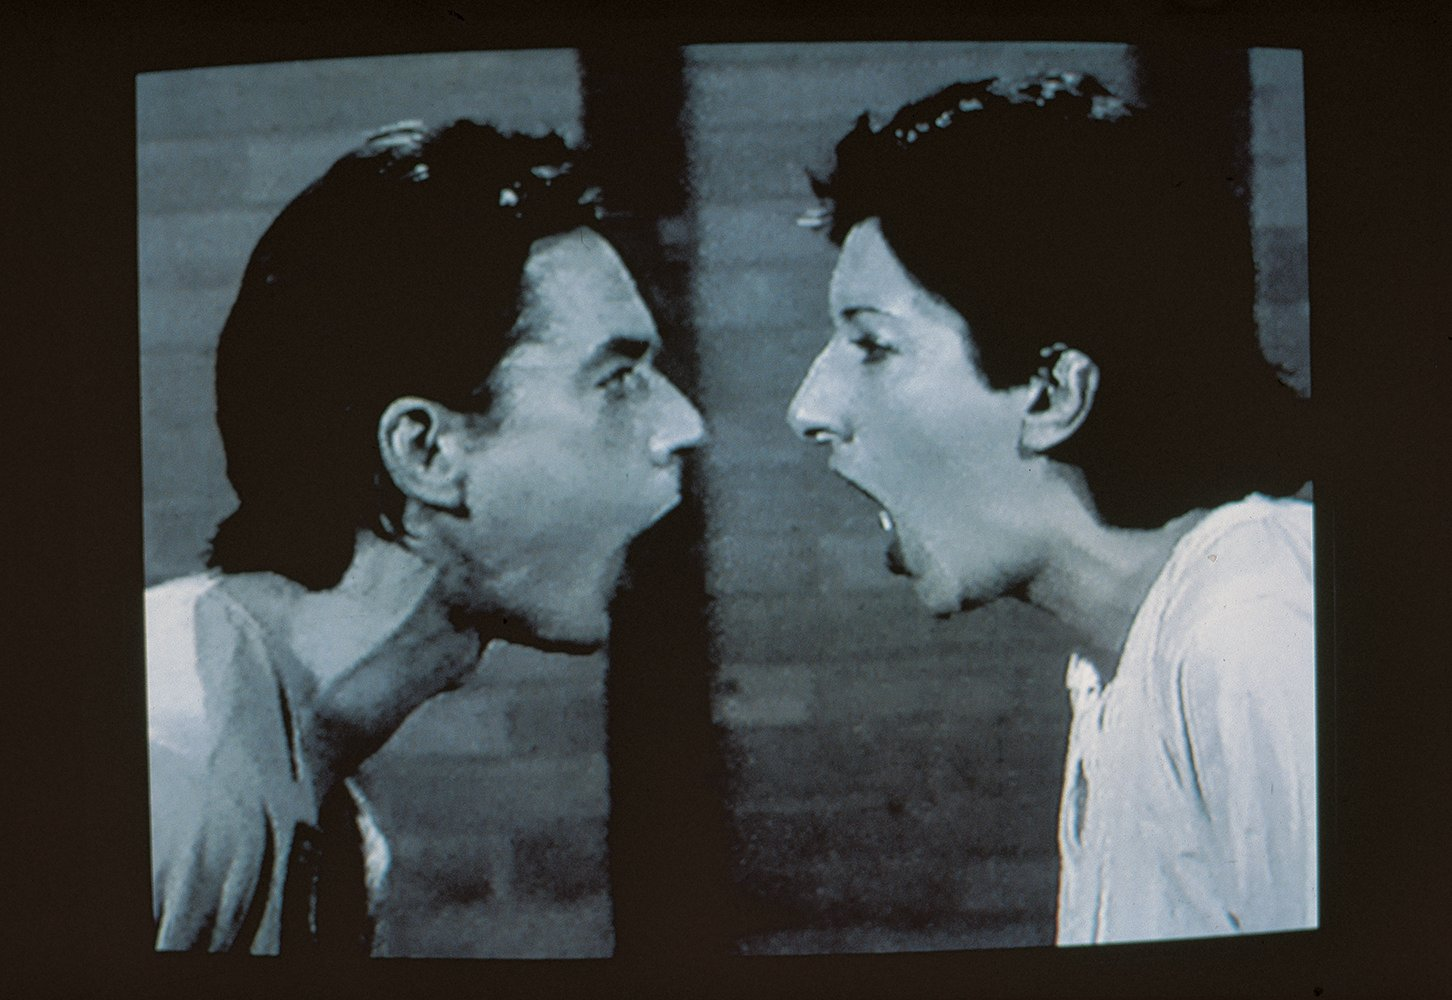 Marina Abramović and Ulay: relive the art couple's most memorable performances